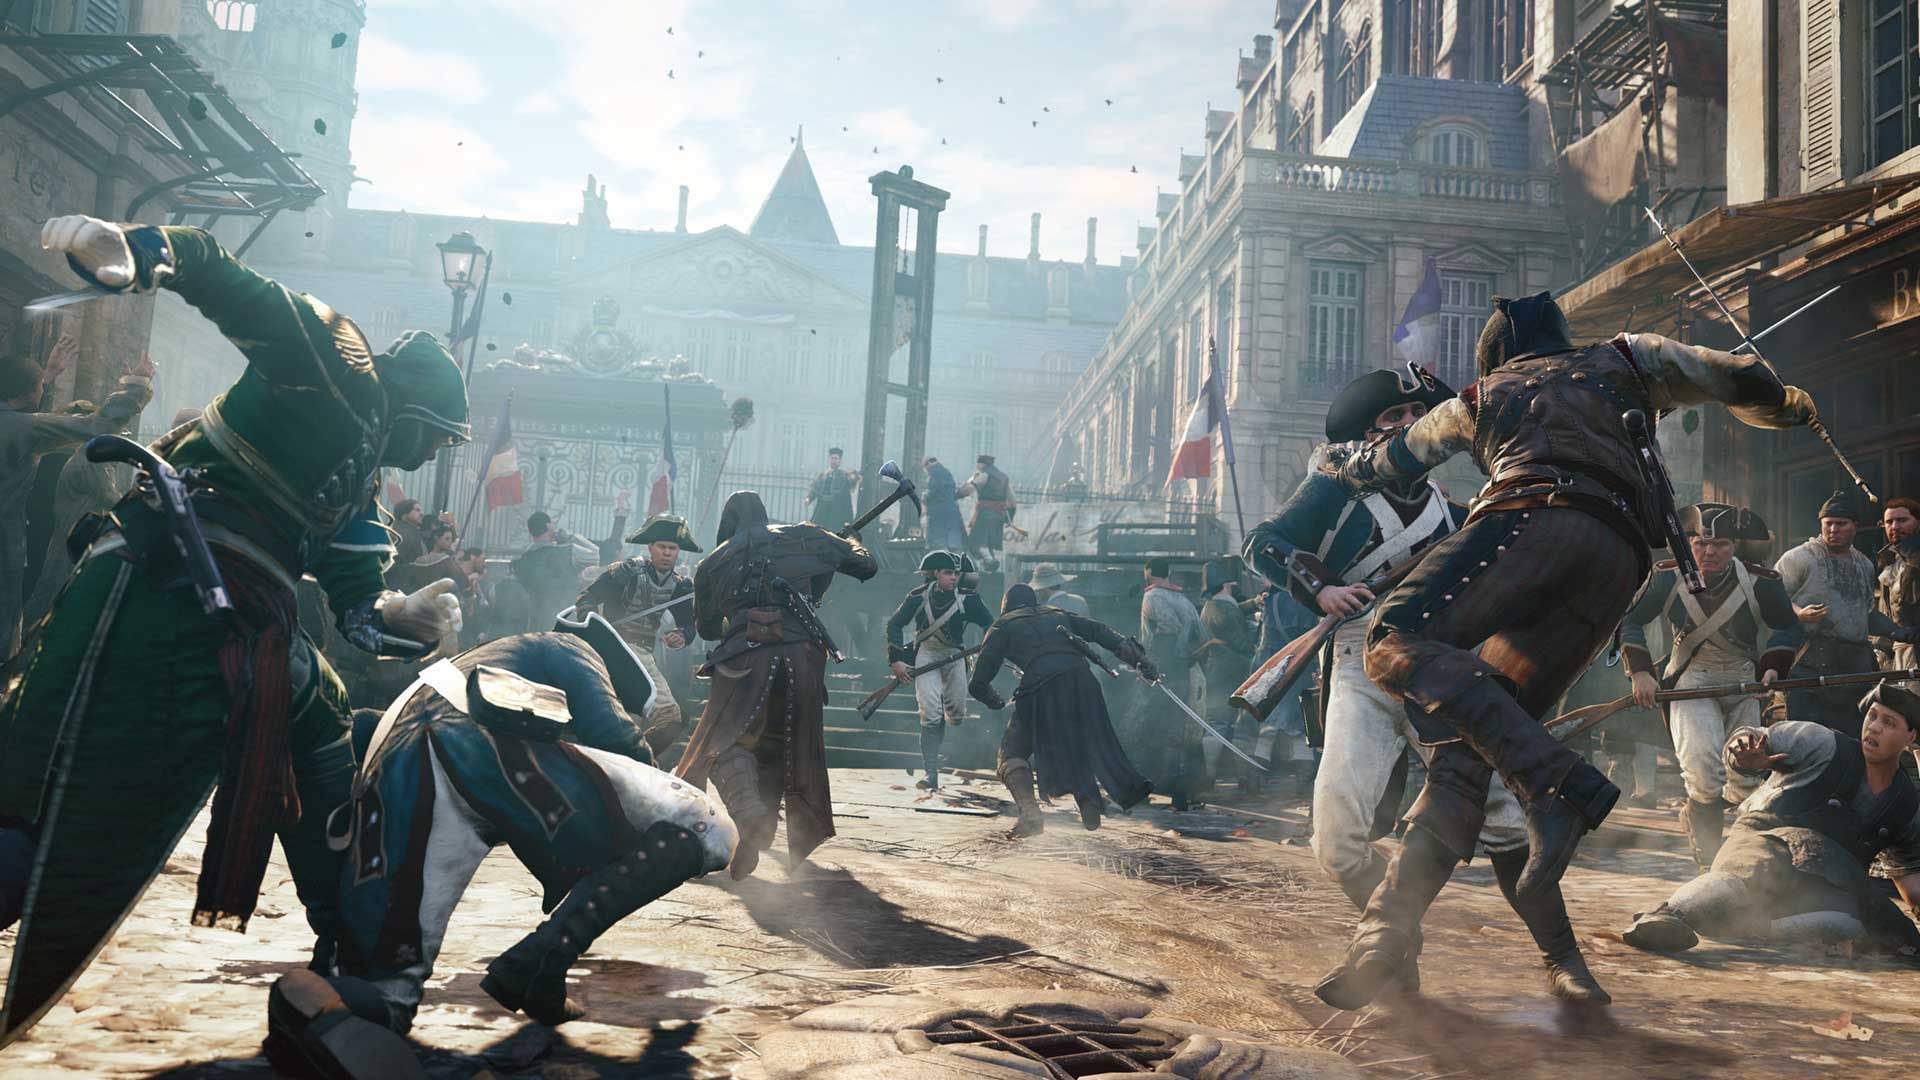 Assassin's Creed Unity is available for less than $1 on CD Keys